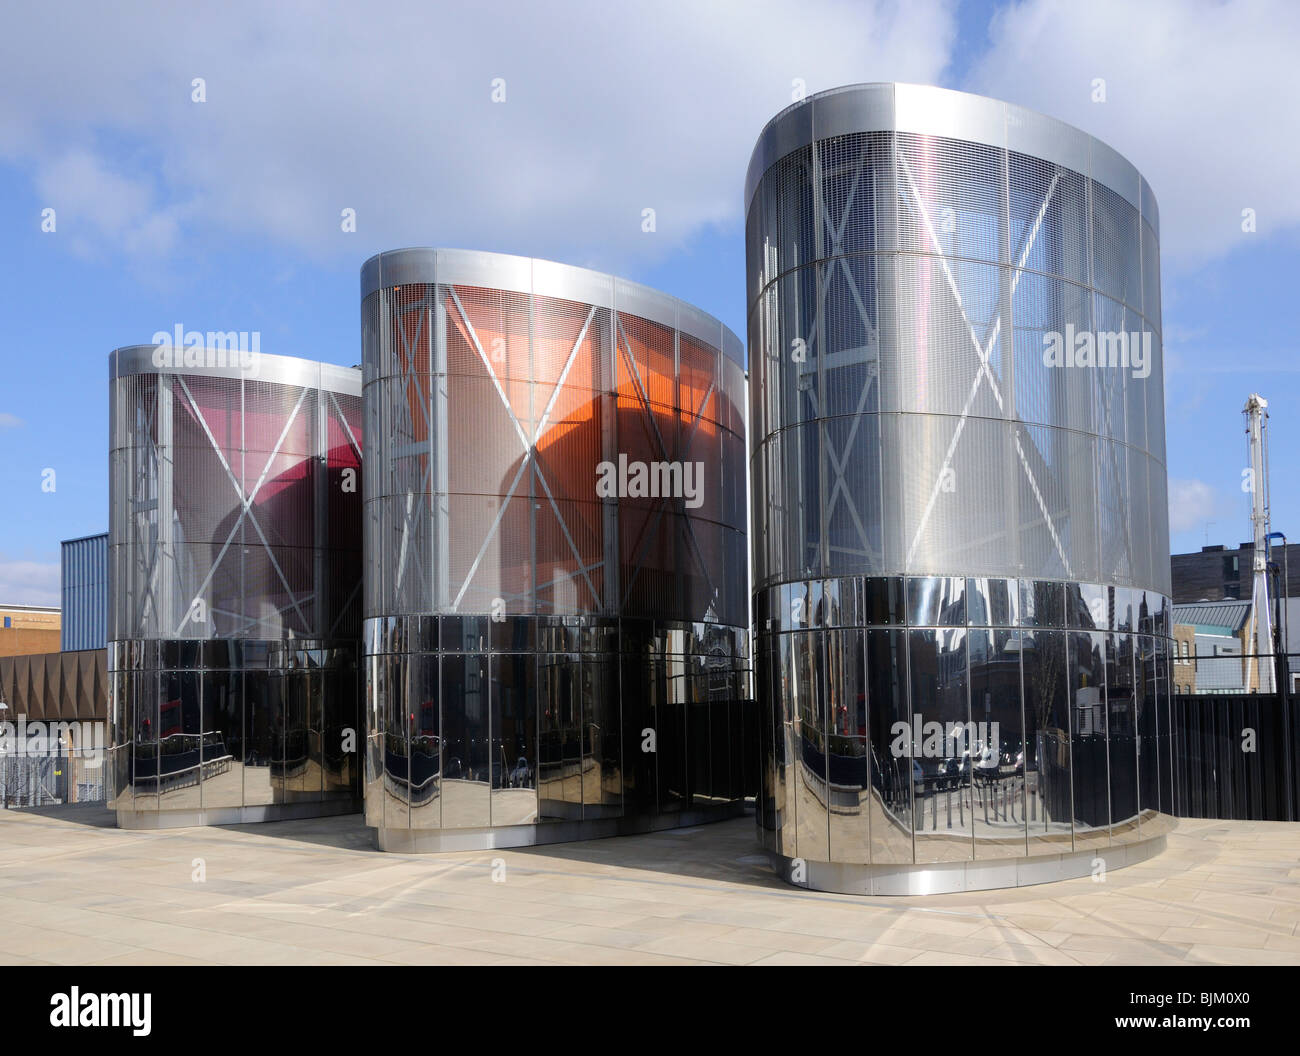 Ventilation shafts, City Road basin, Islington, London, England, UK. - Stock Image